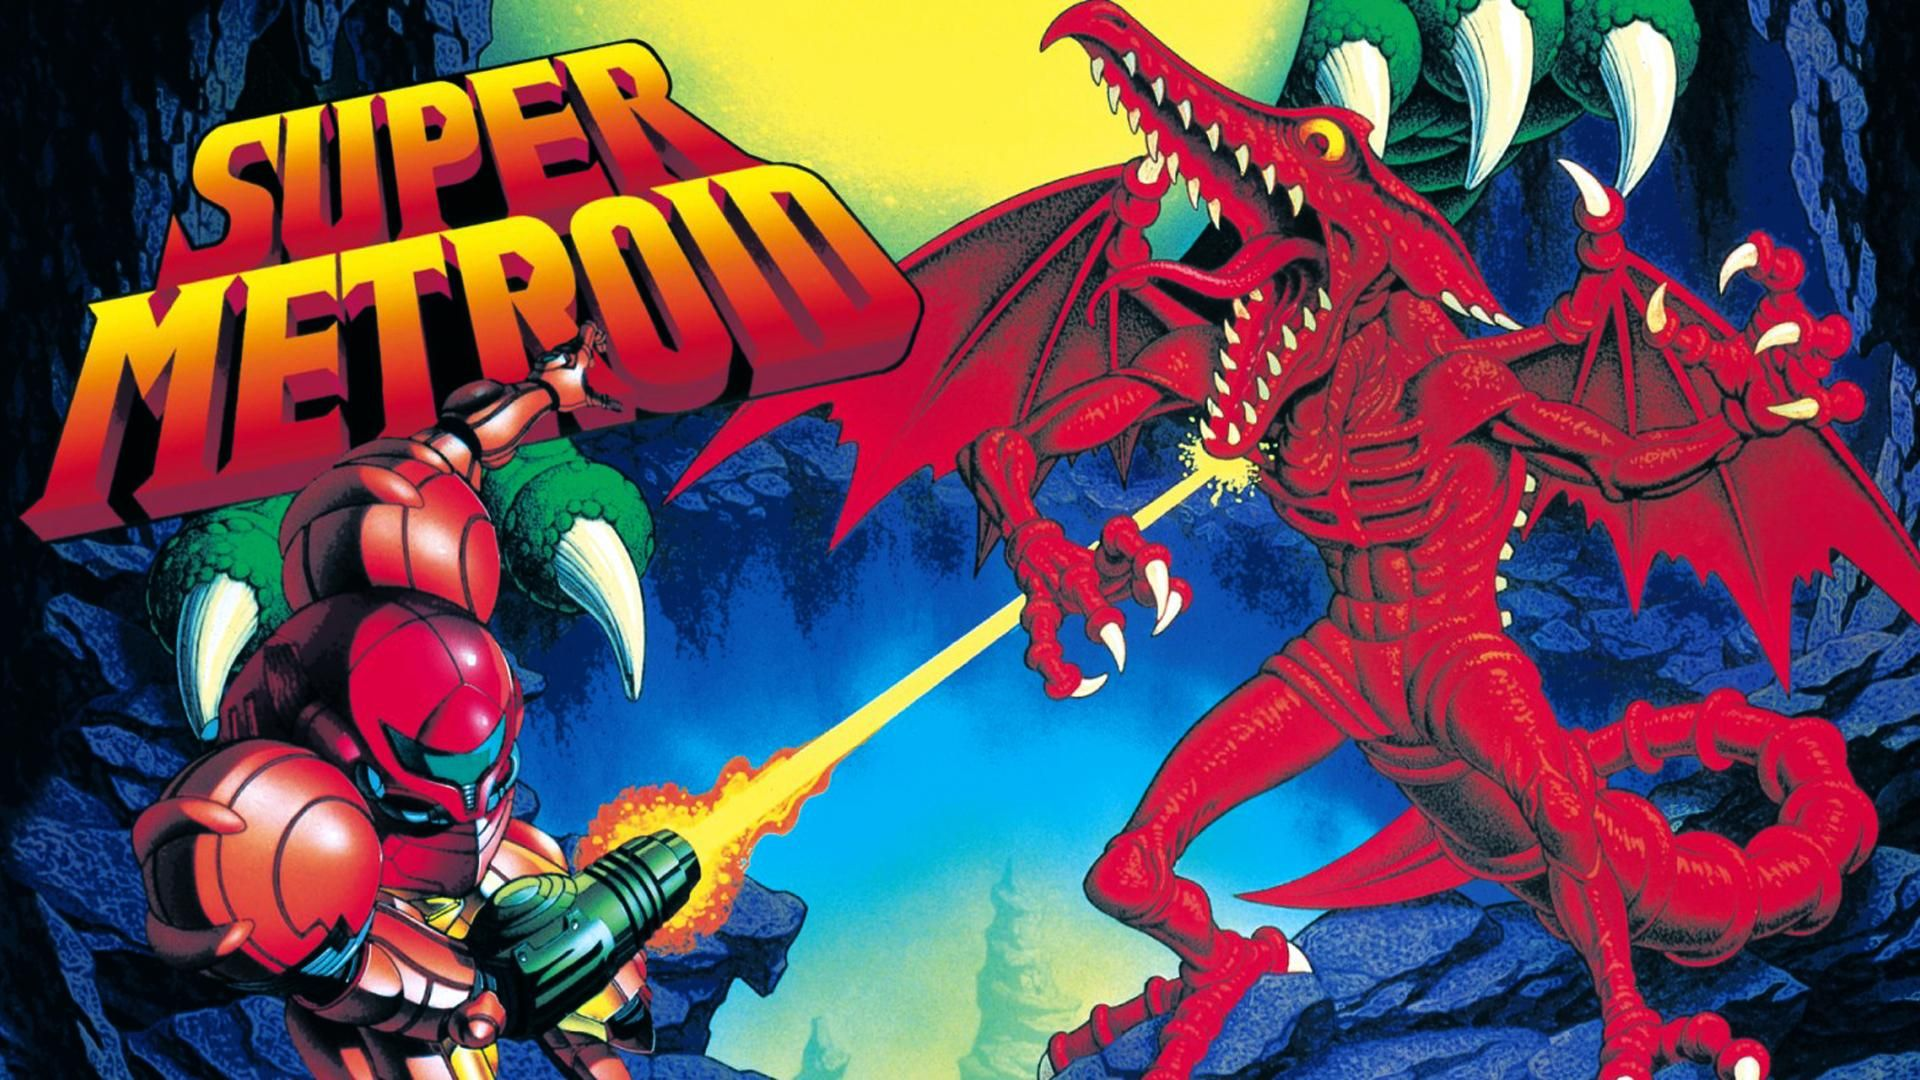 Super Metroid Wallpaper[1920x1080] Metroid, Super